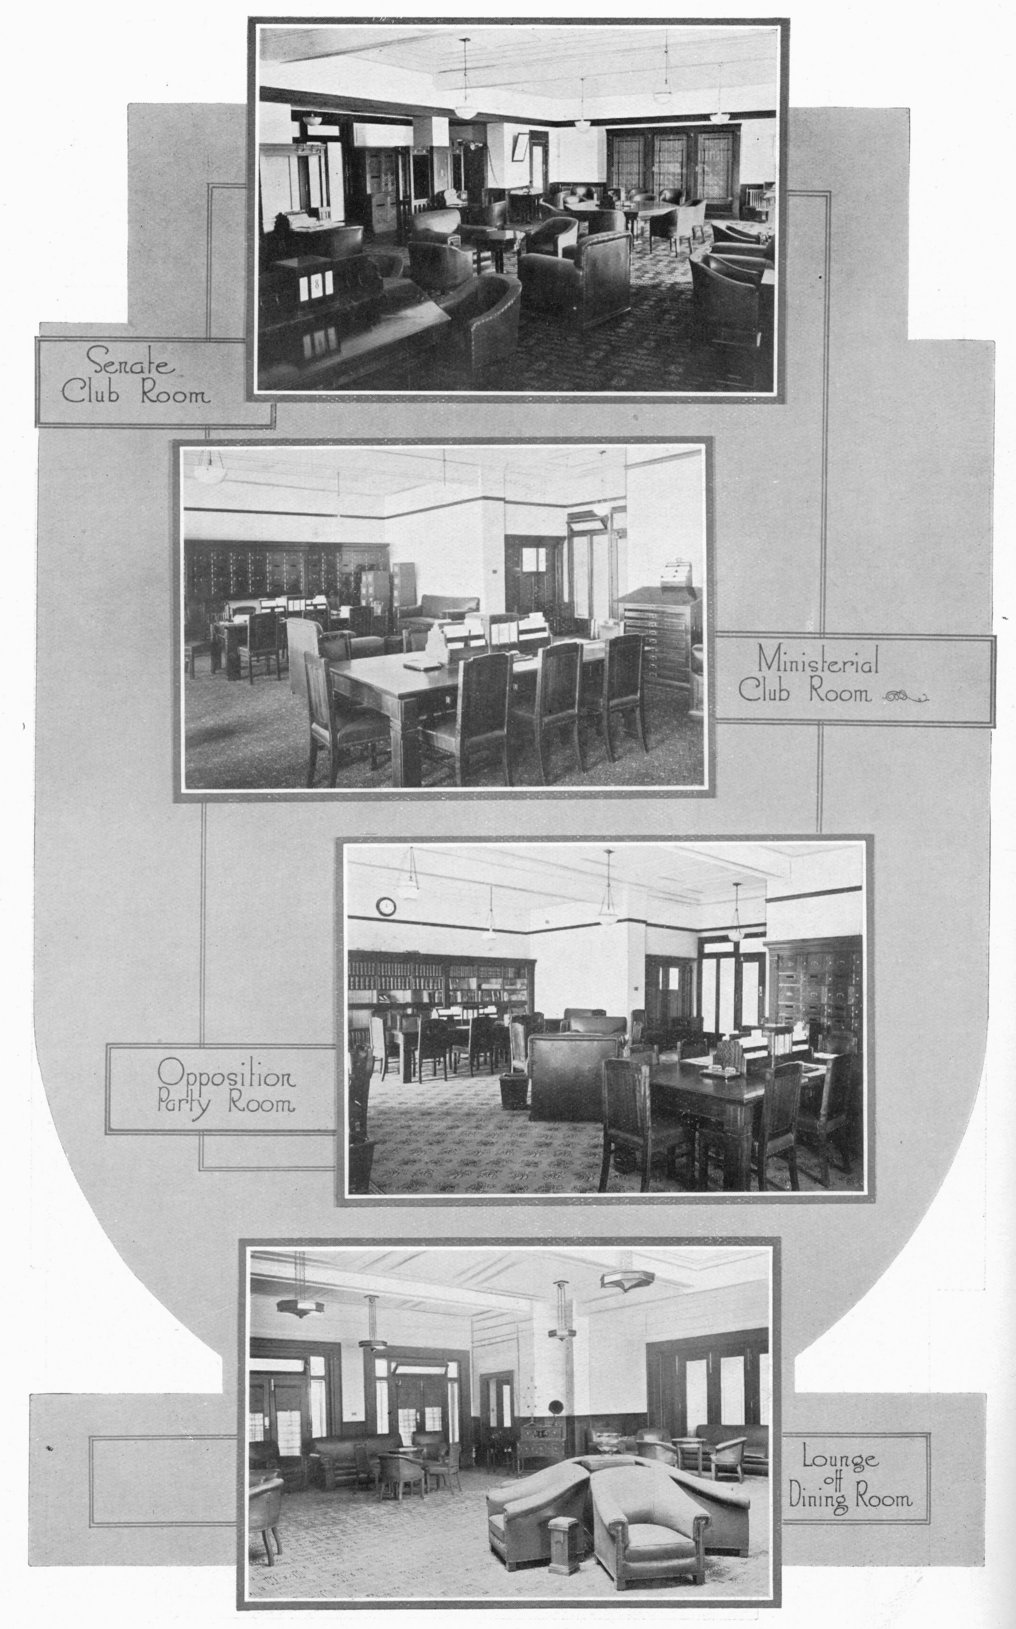 Australian Parliament House Design: As It Was In The Beginning (Parliament House In 1927